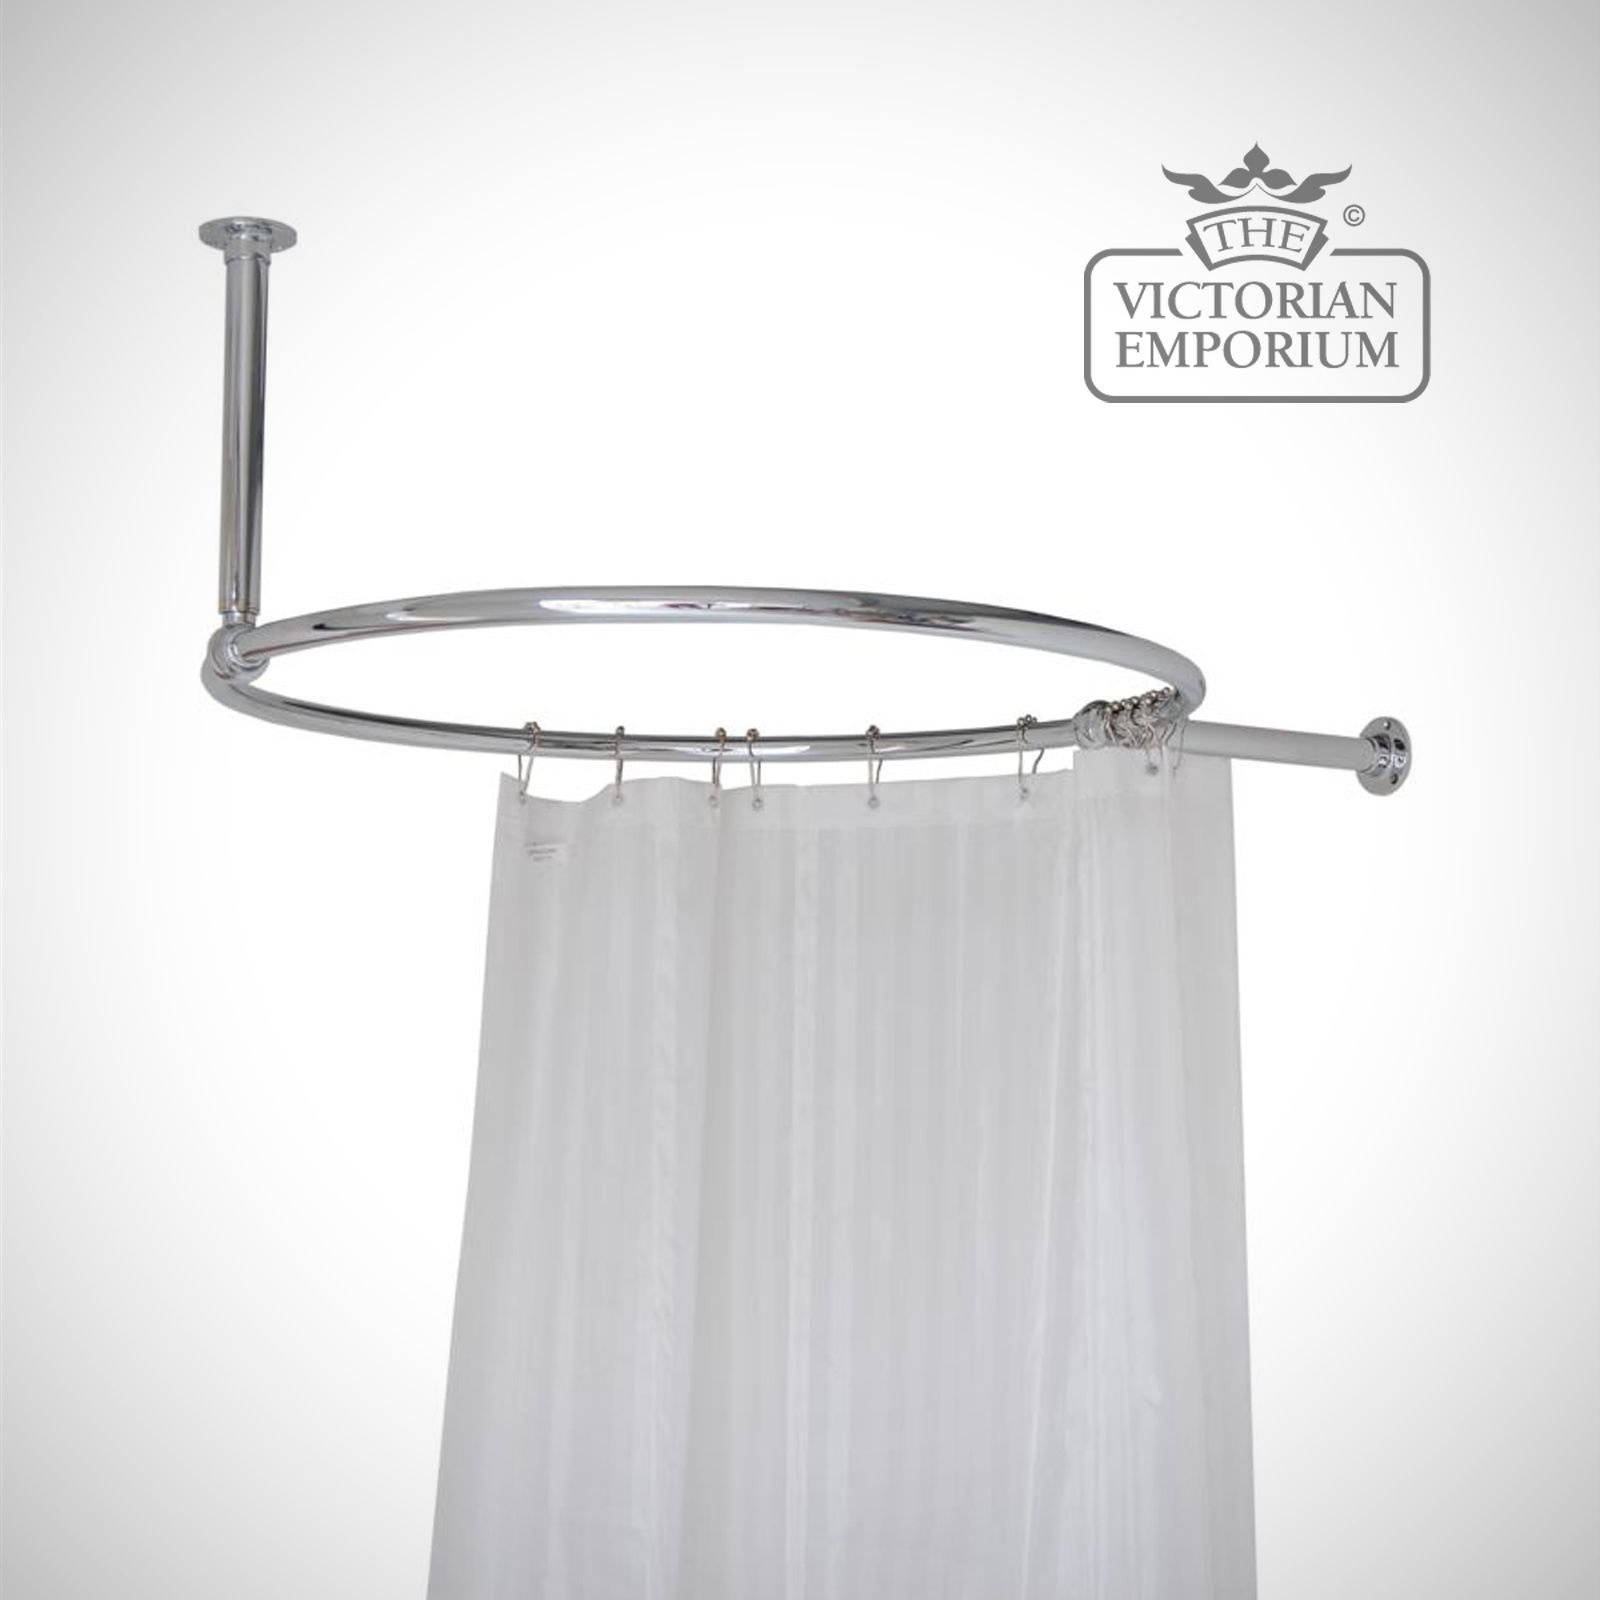 round shower curtain rail chrome with a wall and ceiling stay